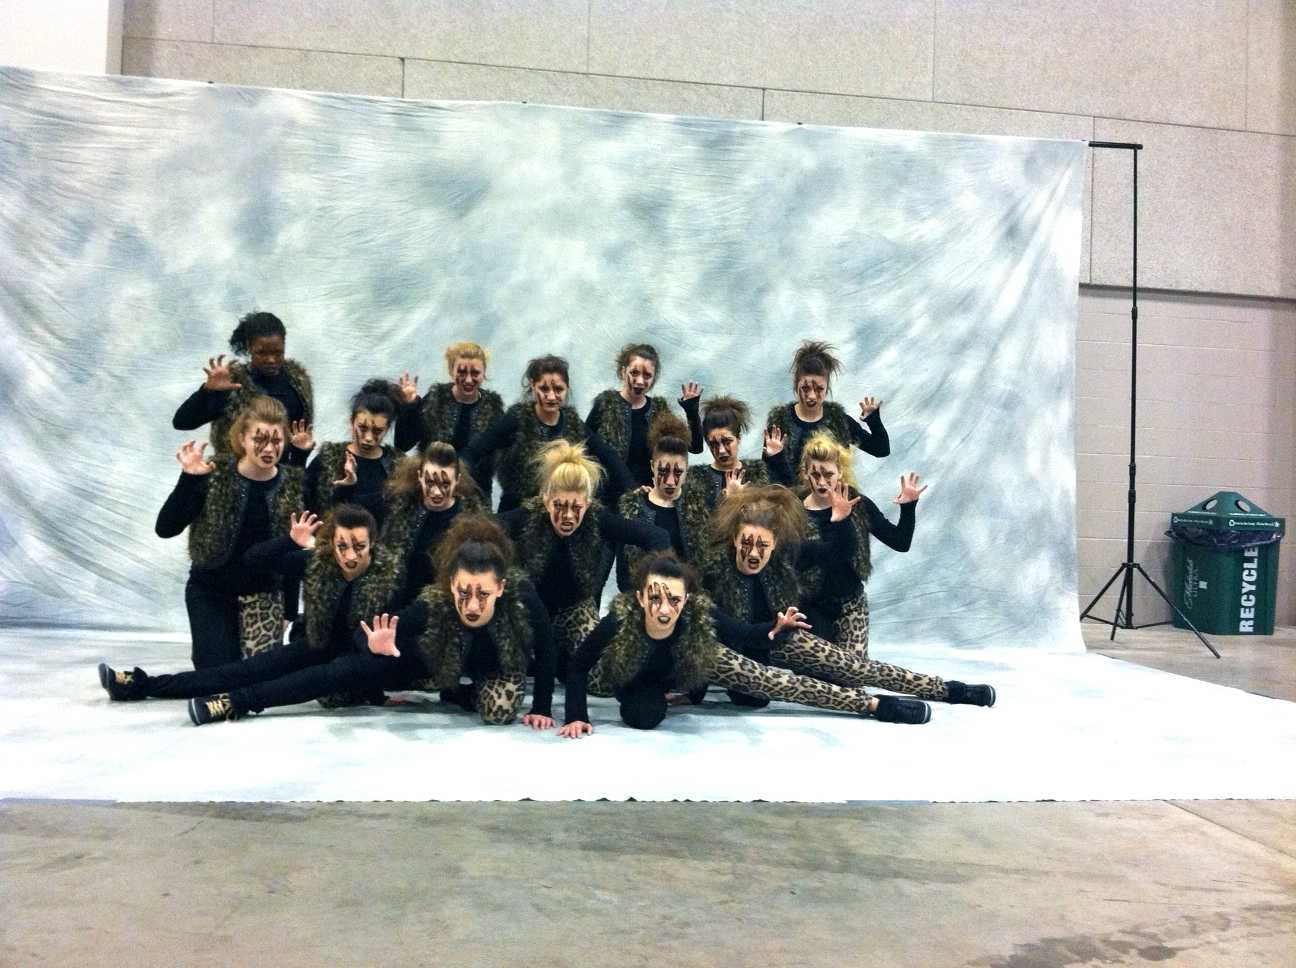 The Huntley poms team poses for their group shot